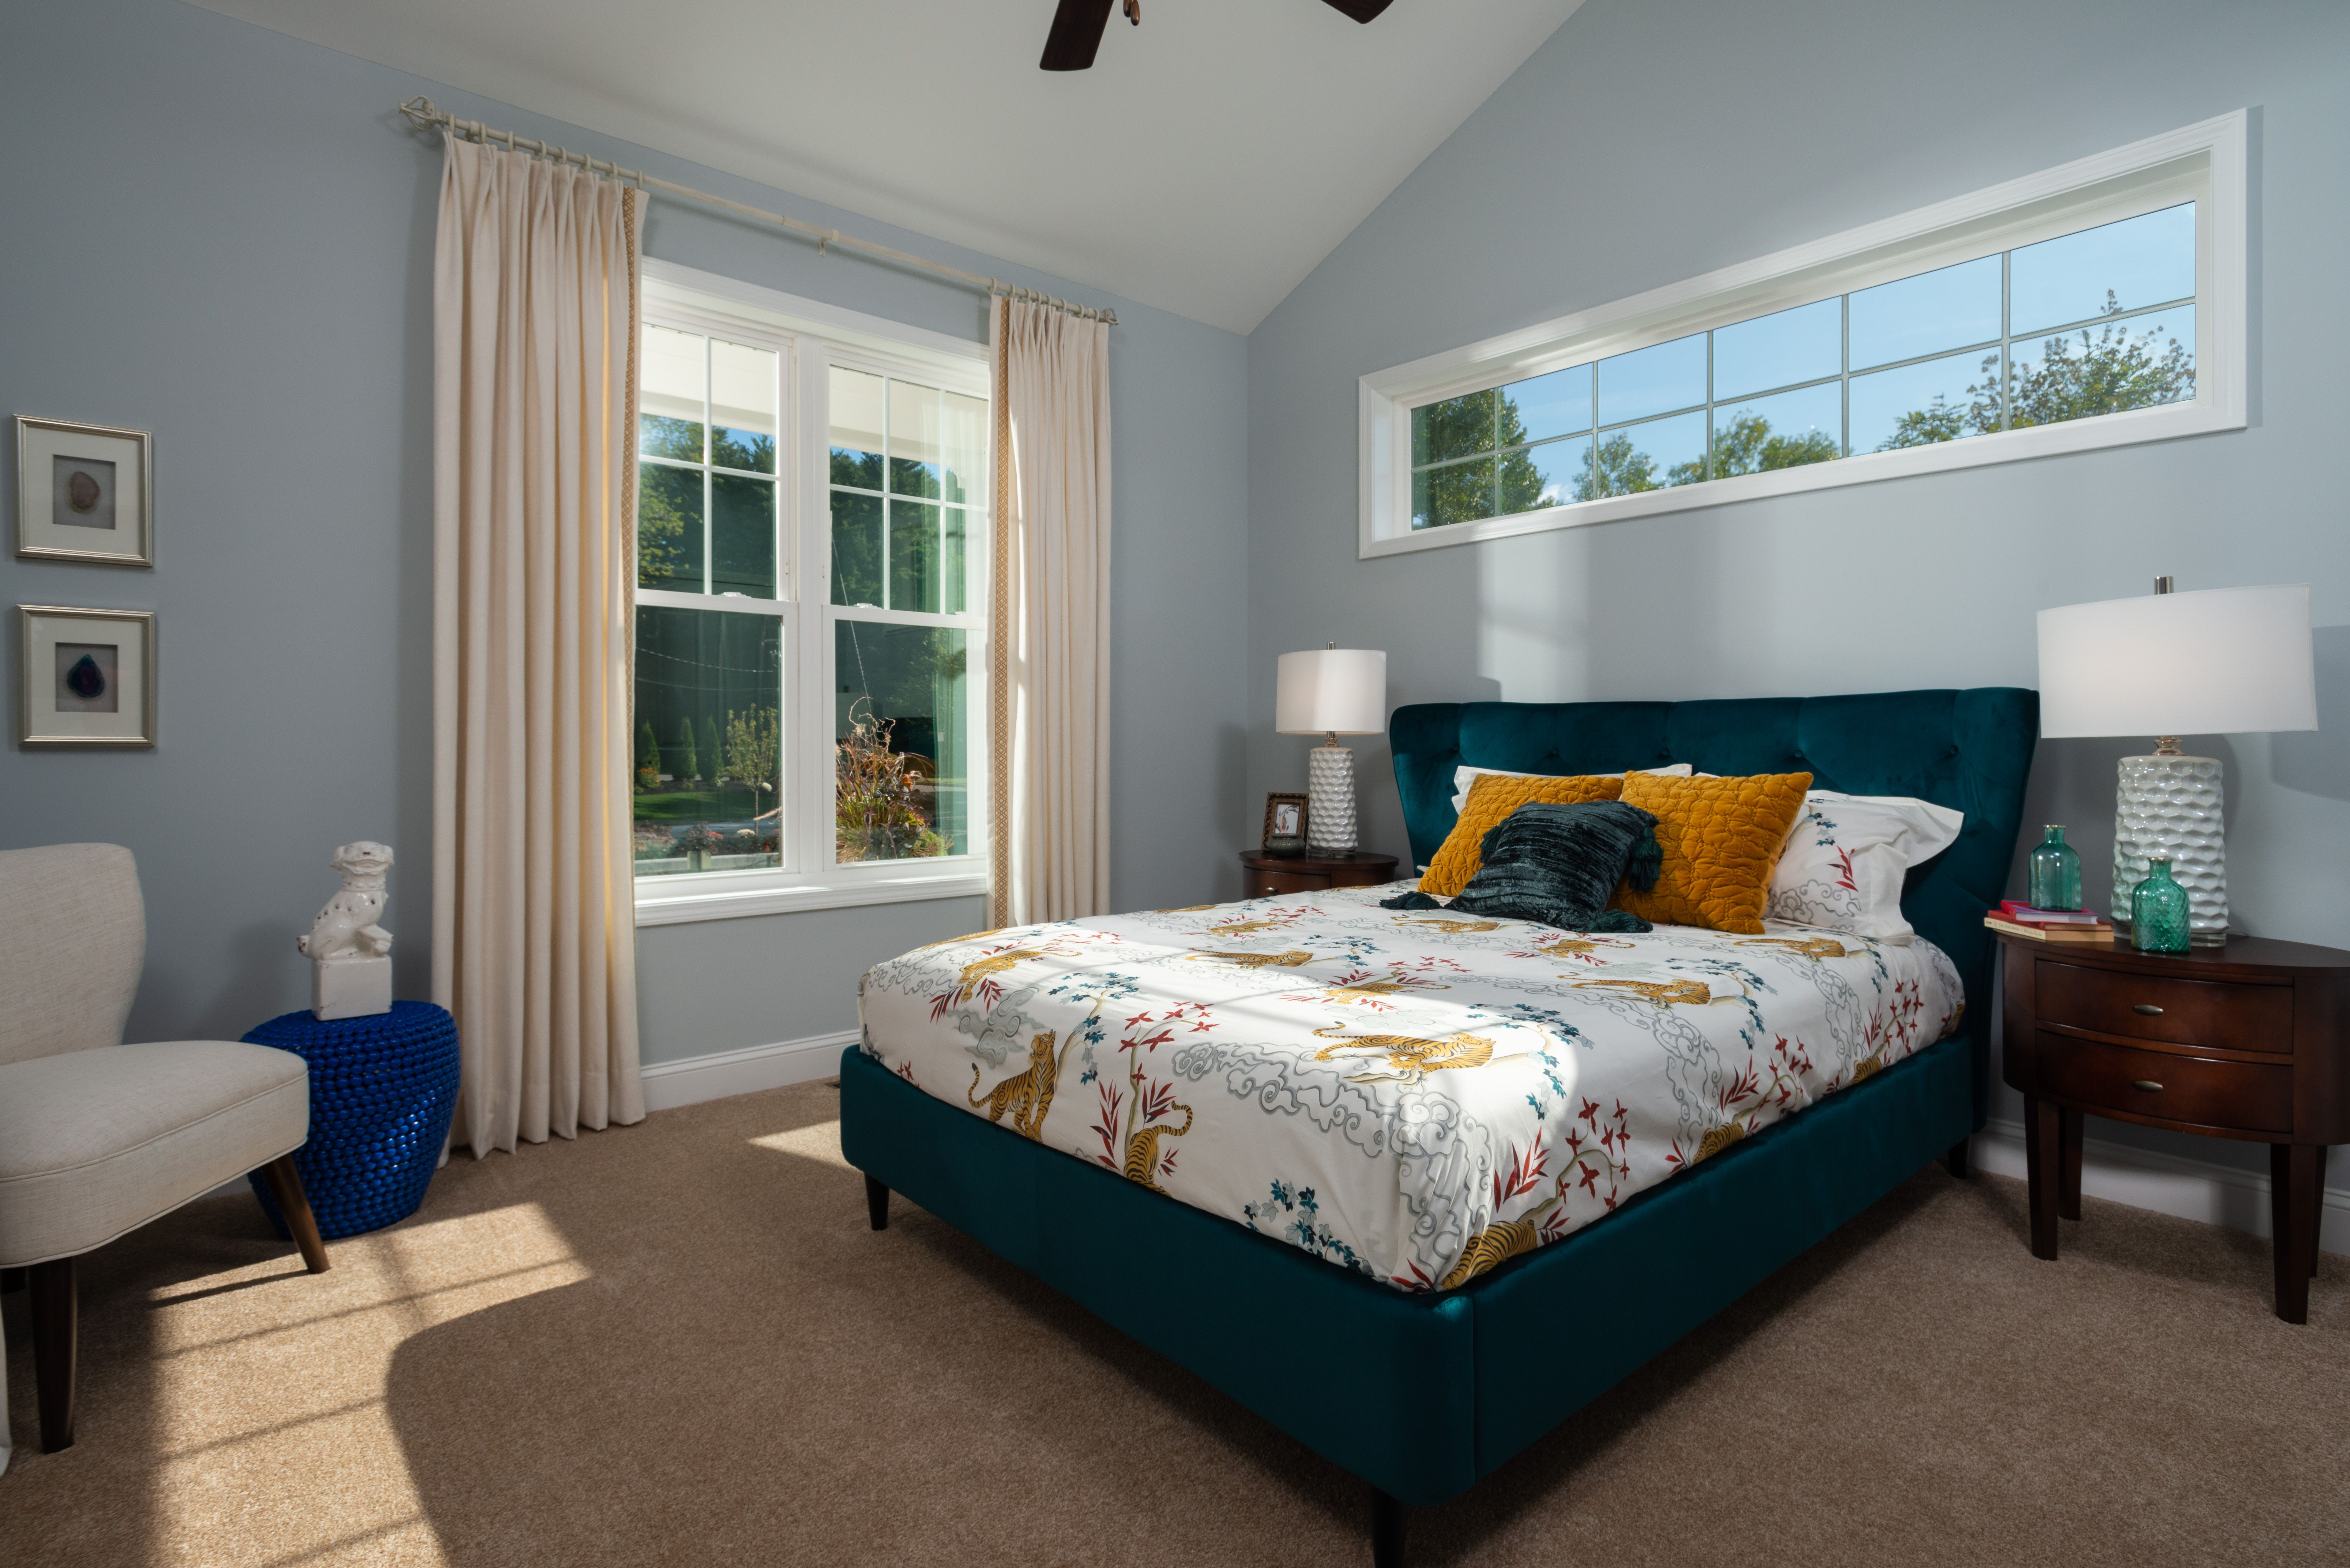 Bedroom featured in the Weston II By Belmonte Builders in Albany-Saratoga, NY